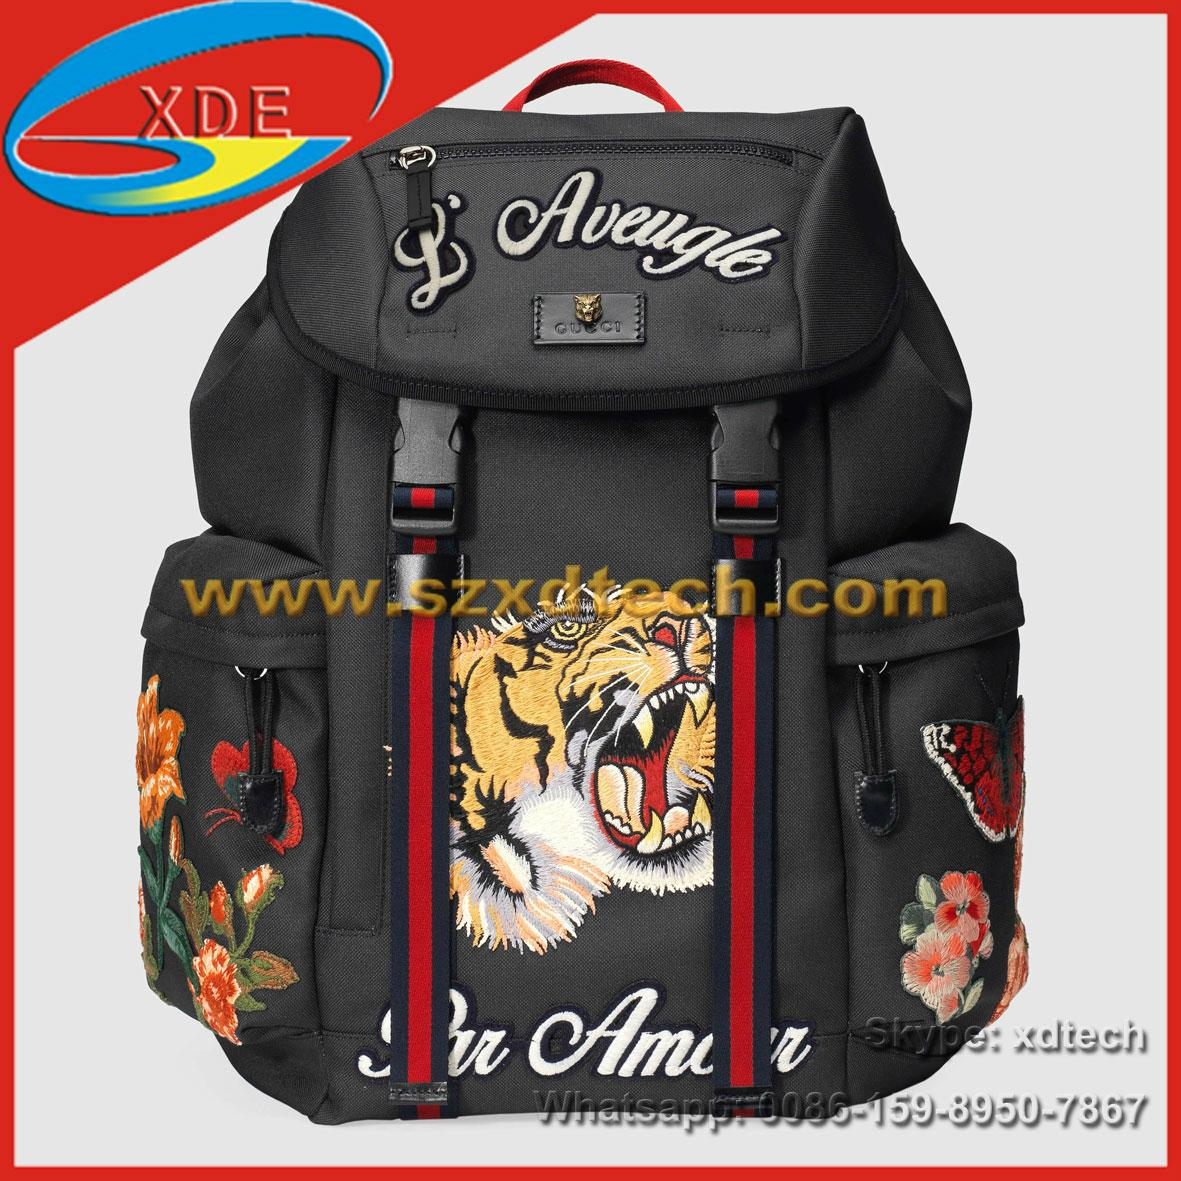 6643d4a624e Gucci Handbags Gucci Backpack with Tiger Embroidered - XD-GB10 ...